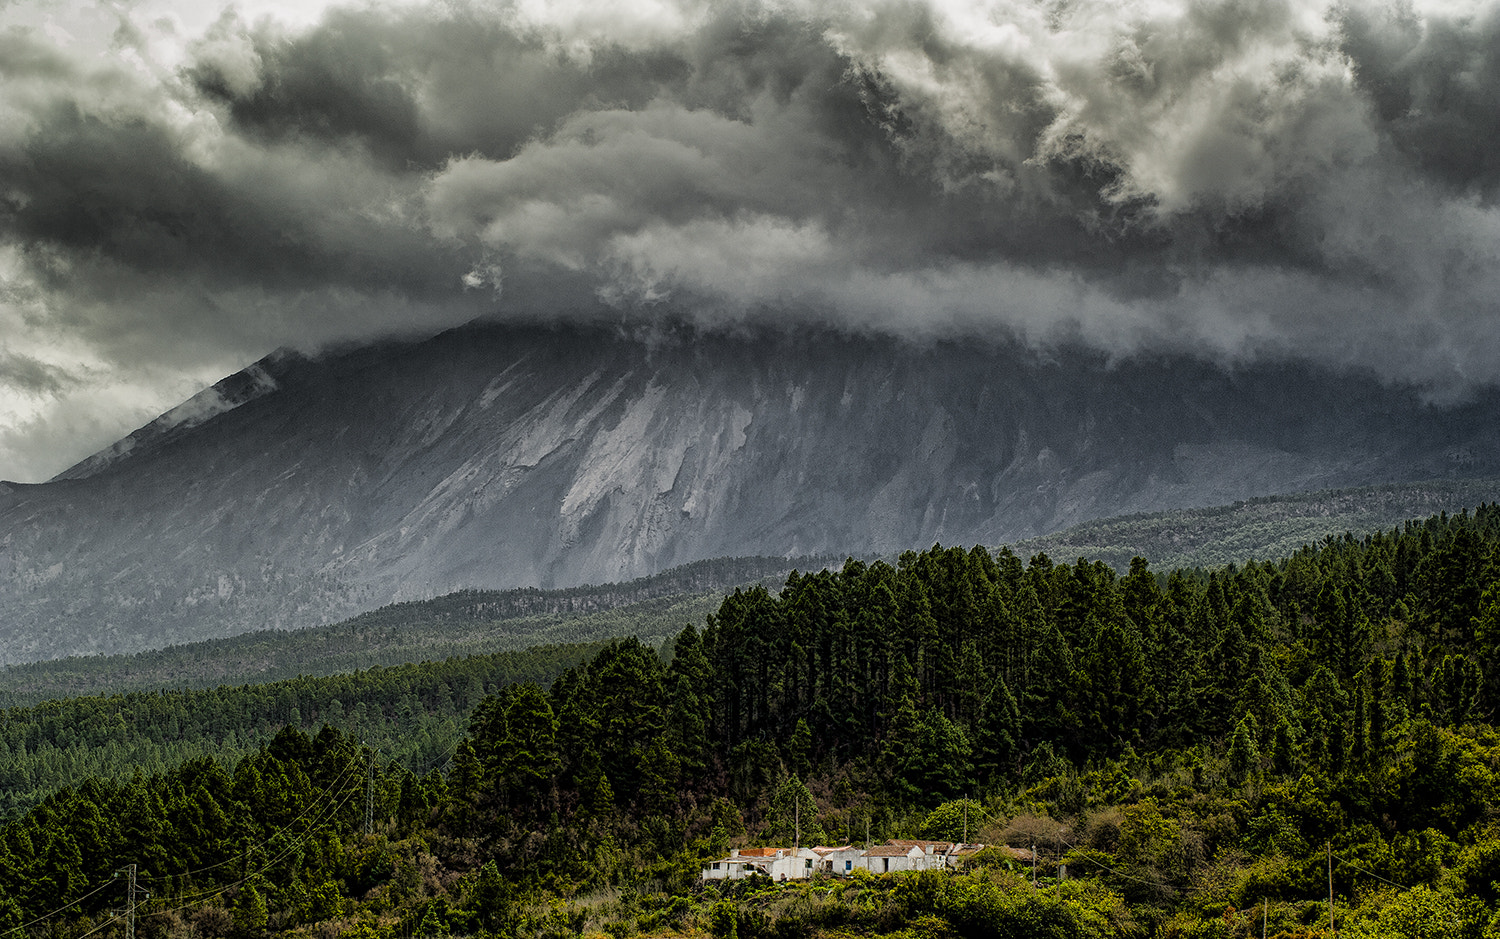 Photograph alpiédelvolcán by crom dull on 500px